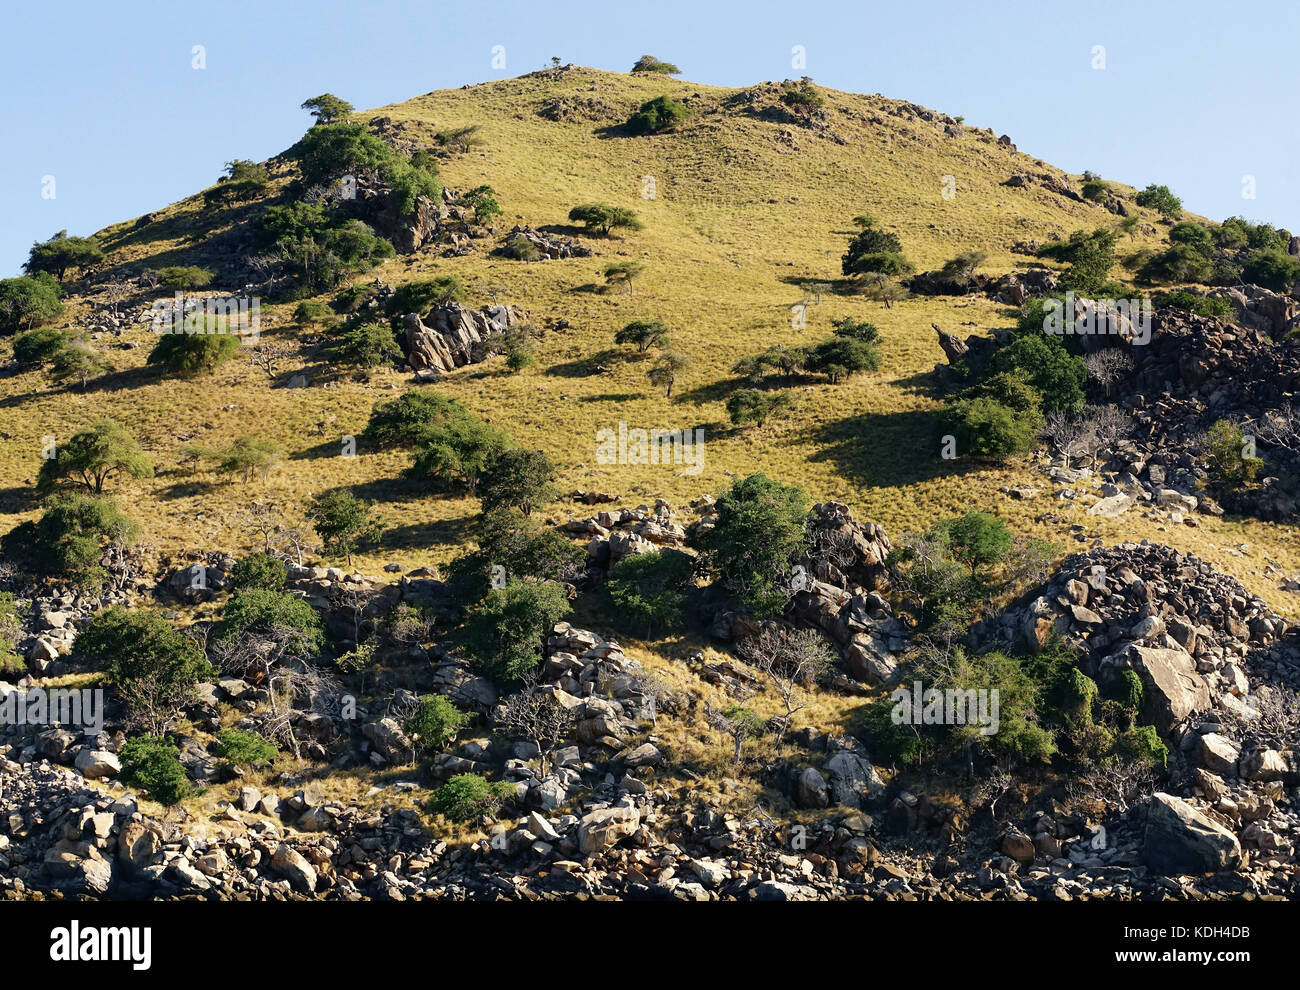 Green vegetation mountain landscape at the coastline of Labuan Bajo Bajawa, Indonesia. - Stock Image